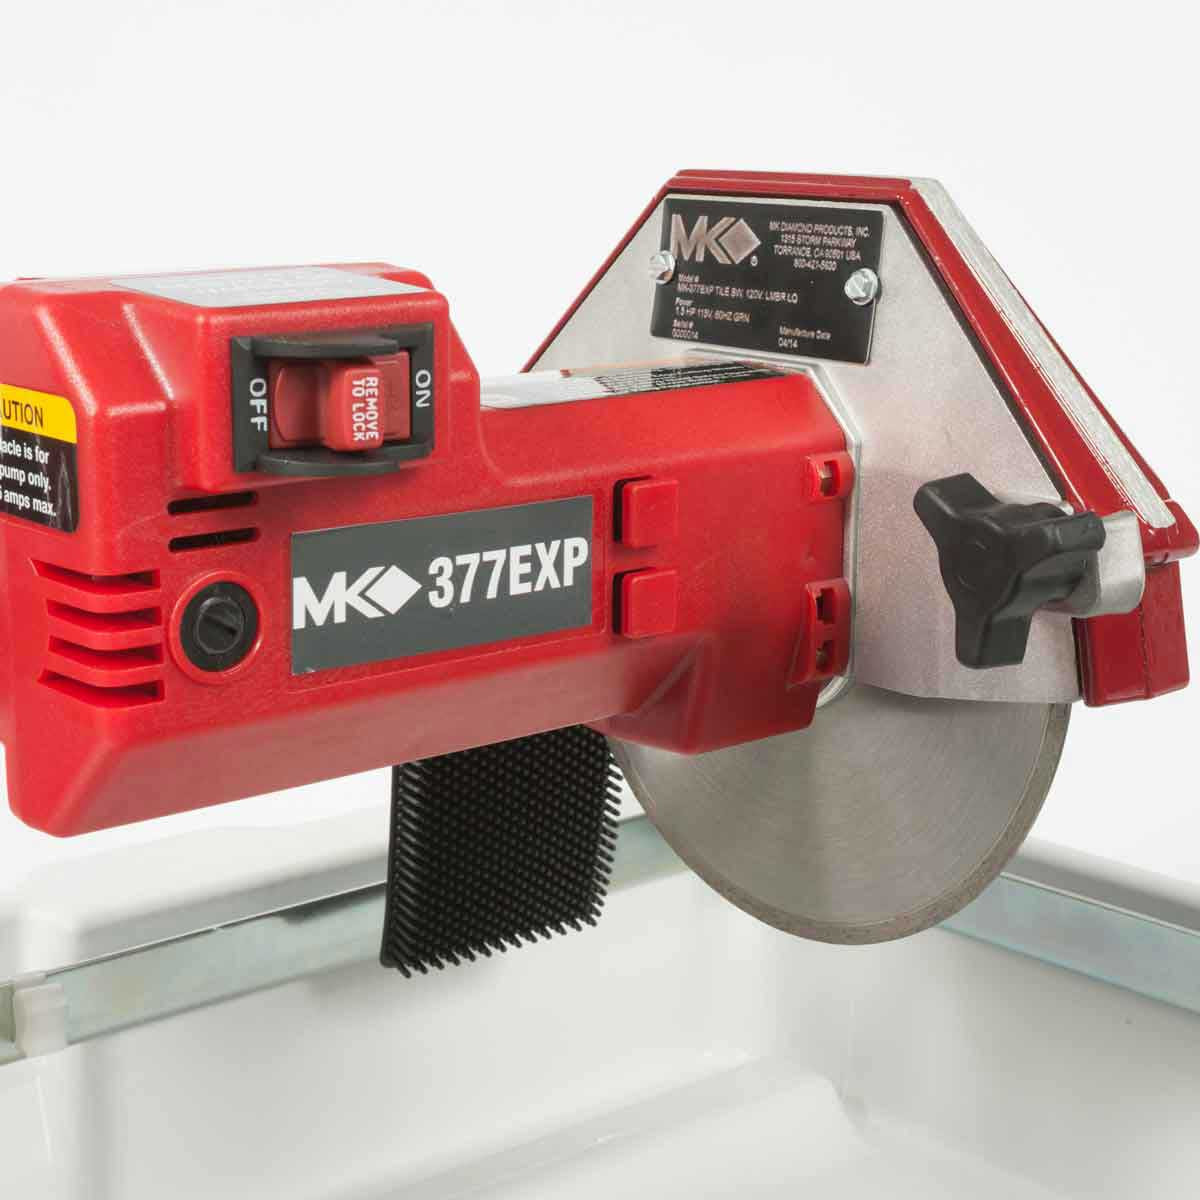 MK-377EXP 7 inch direct drive tile saw motor 2